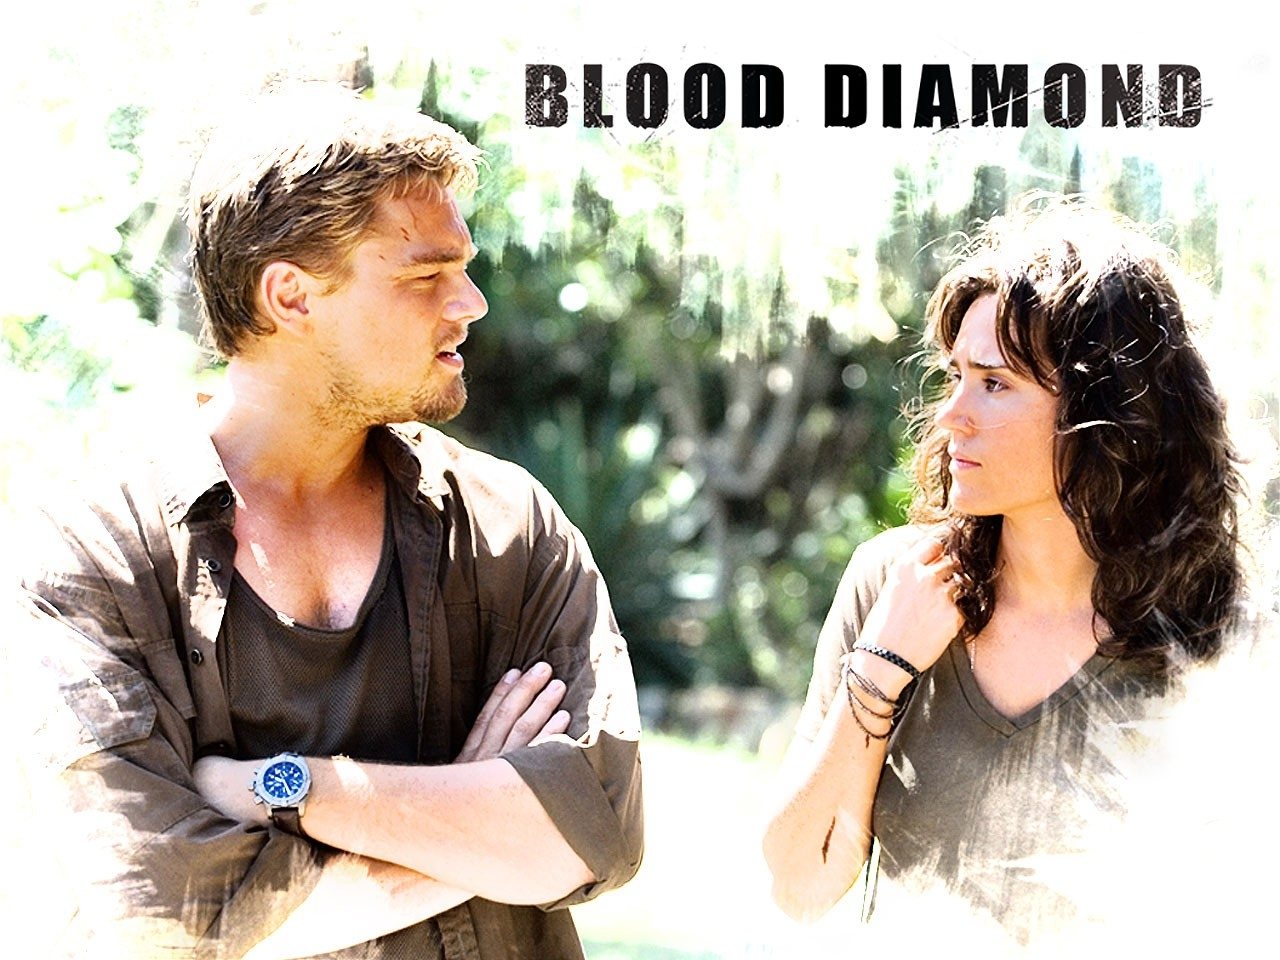 Wallpaper del film Blood Diamond - Diamanti di sangue con Jennifer Connelly e Leonardo DiCaprio